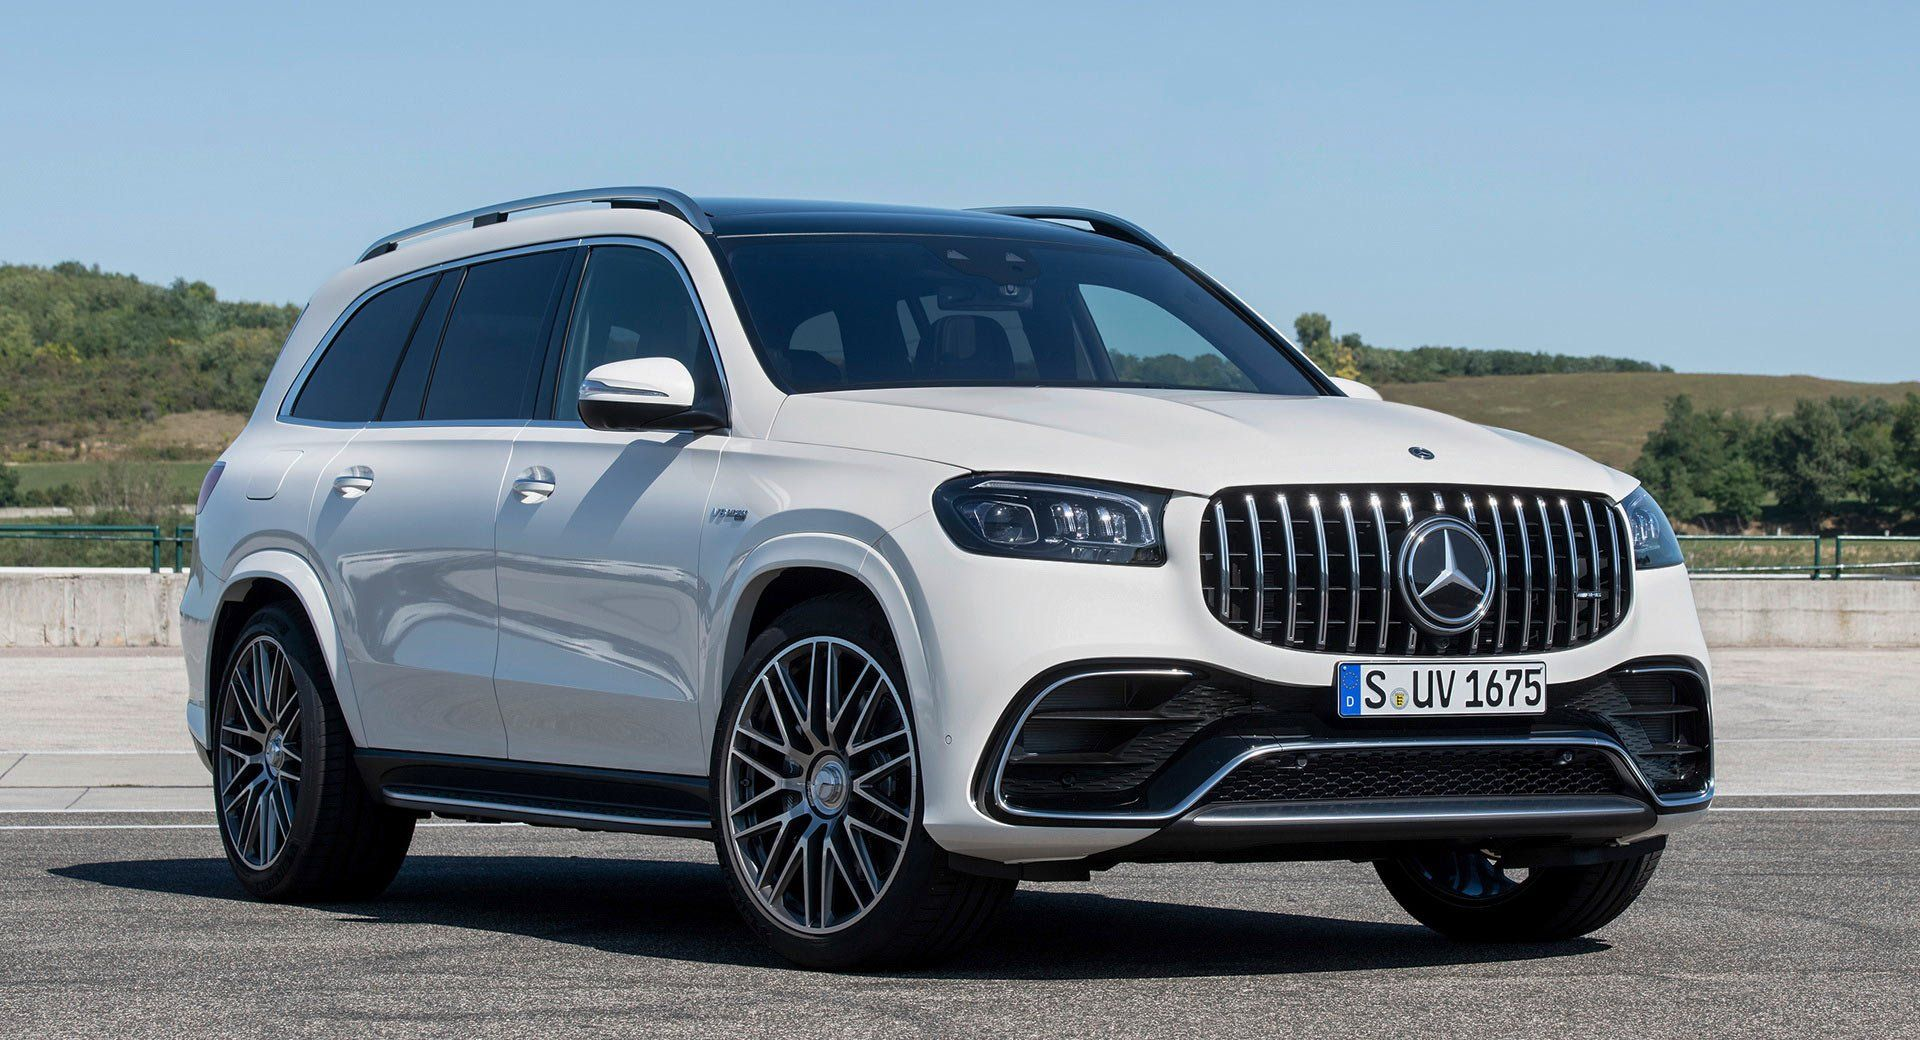 2021 Mercedes Amg Gls 63 Is Your Glorious 603 Hp Luxury 7 Seater Suv Laautoshow Mercedes Mercedesamg Merced New Mercedes Amg Mercedes Benz Gle 7 Seater Suv